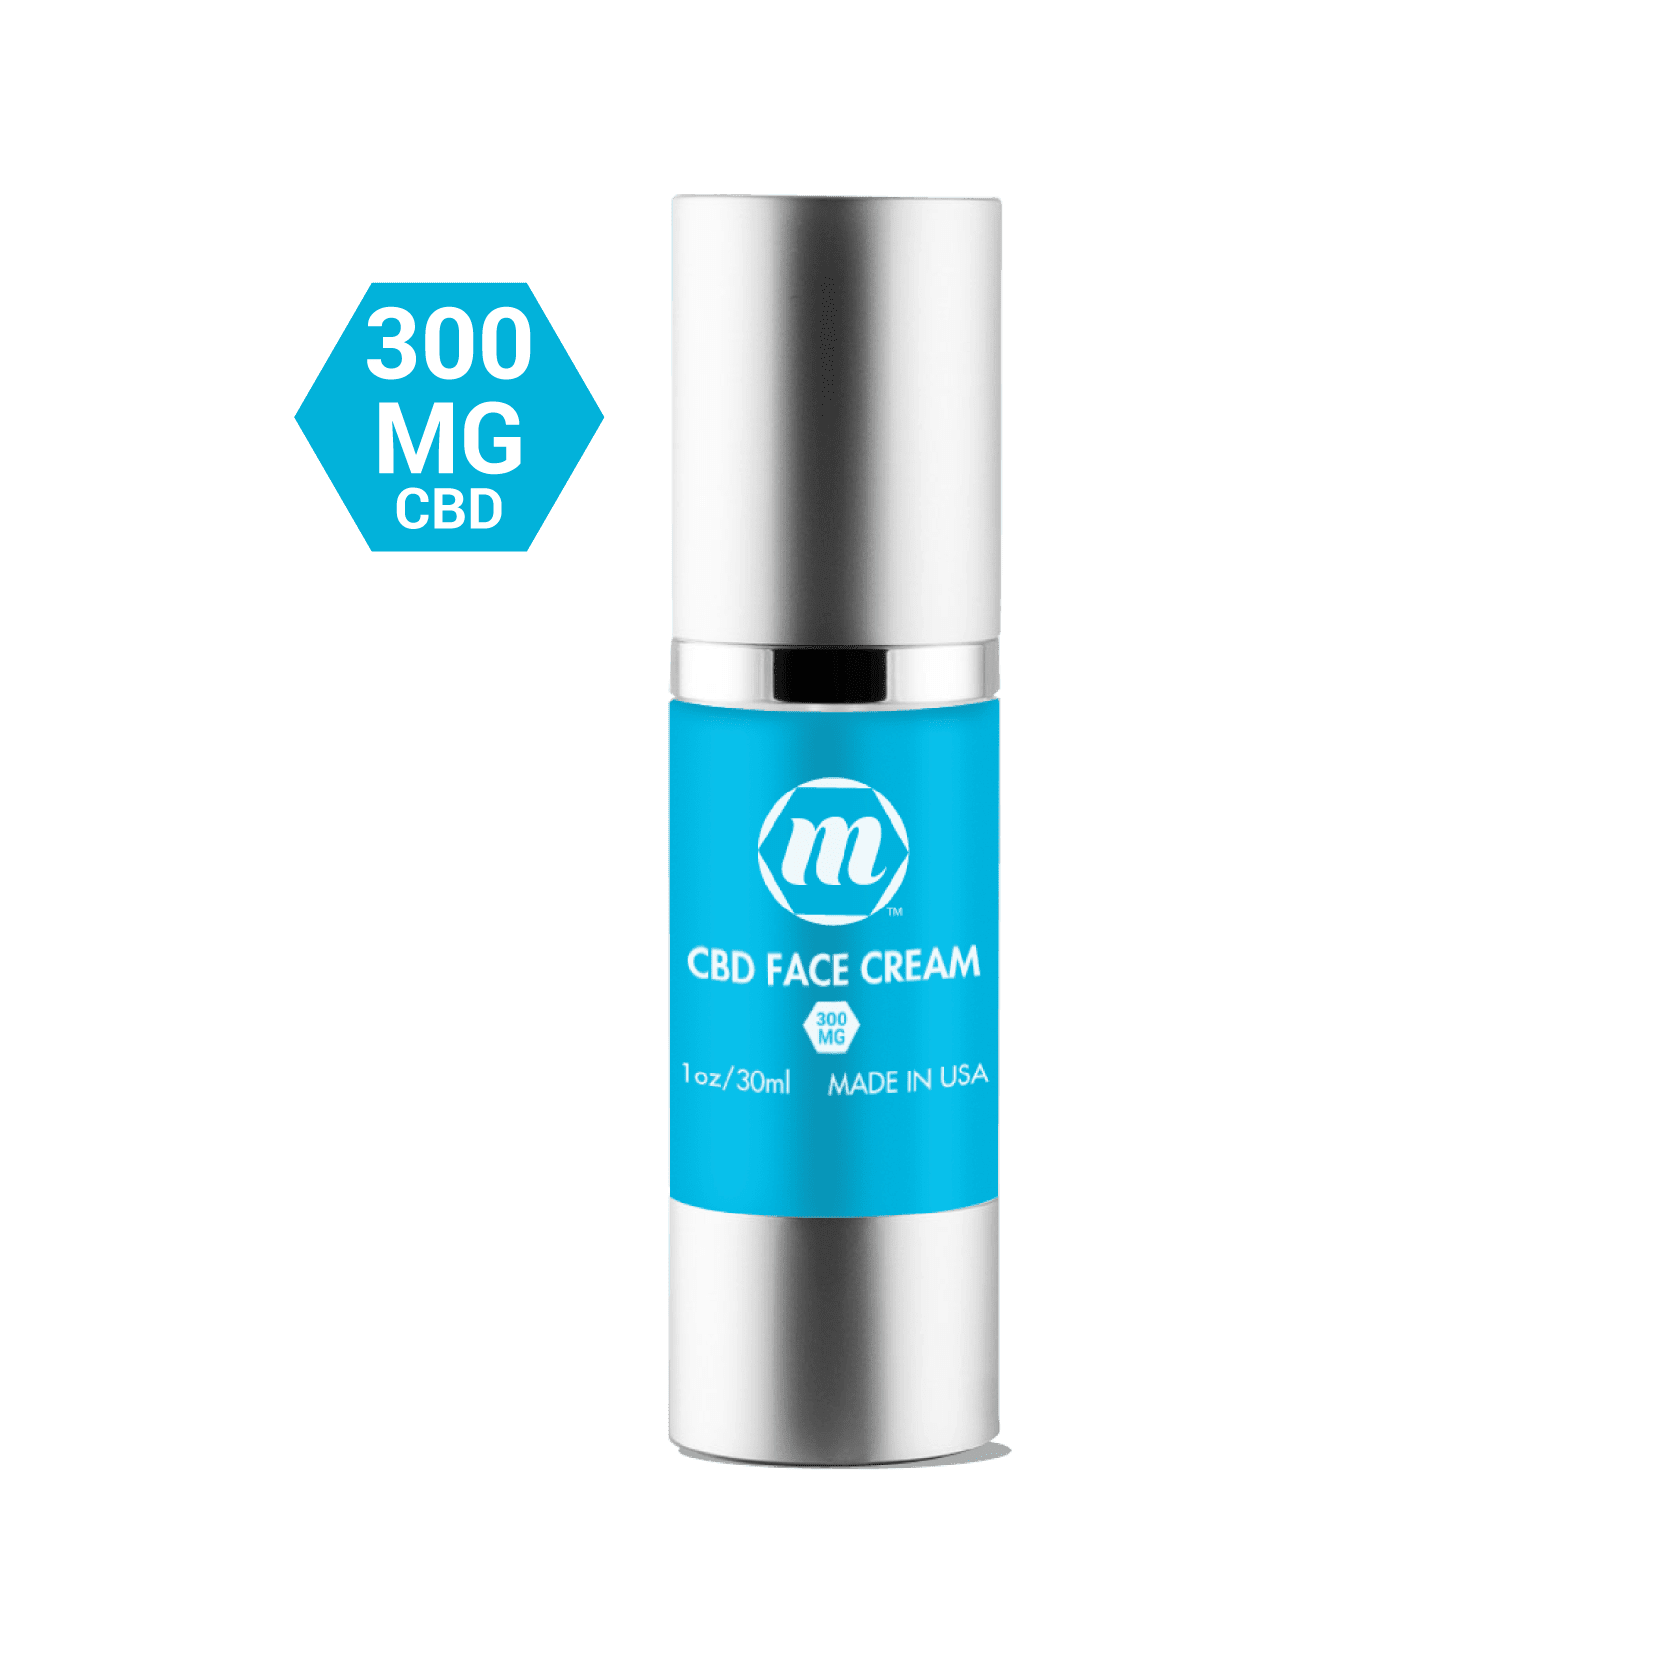 Natural Anti-Inflammatory CBD Face Cream 300MG | MCBD shop